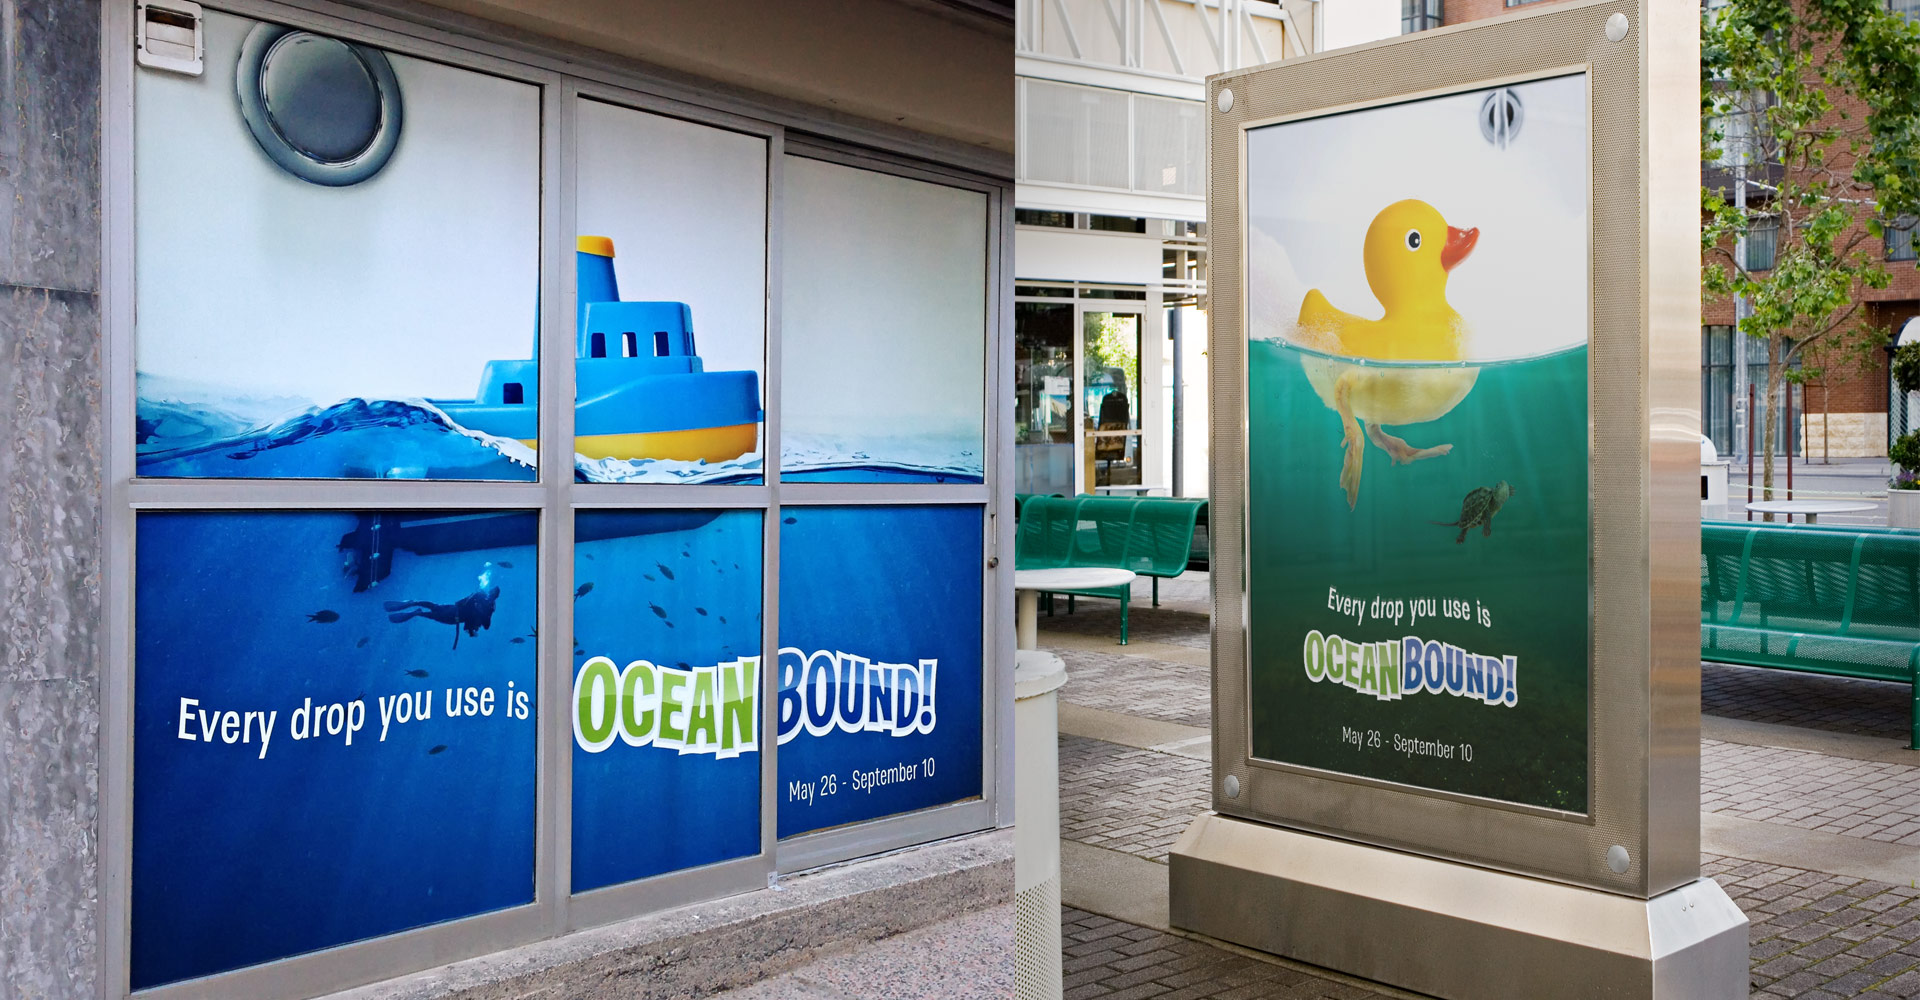 Ocean Bound Prin advertisements, rubber duck, toy boat.